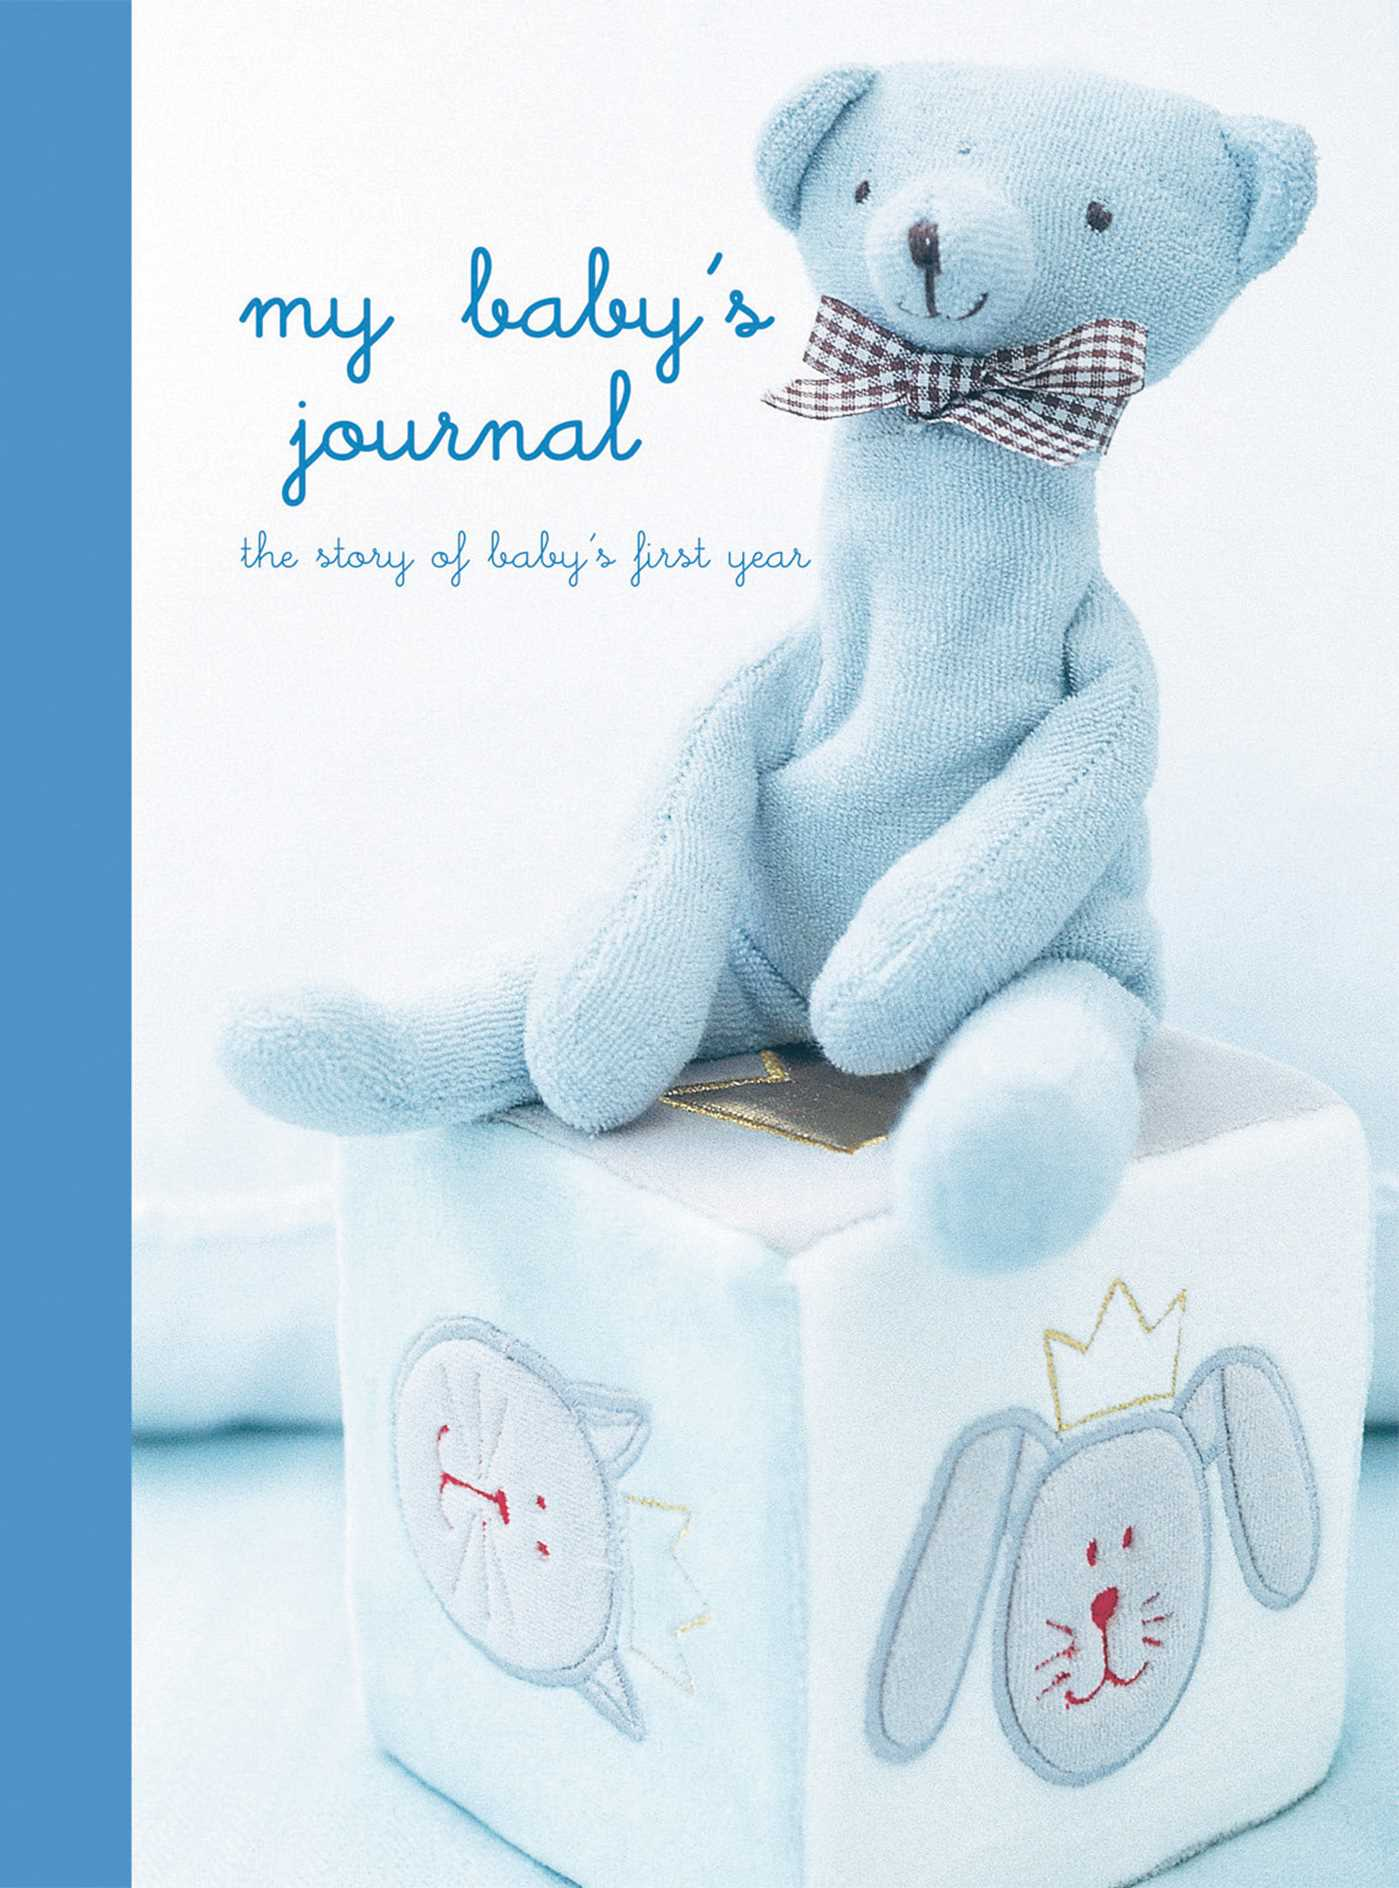 My Baby's Journal (Blue) : the story of baby's first year by